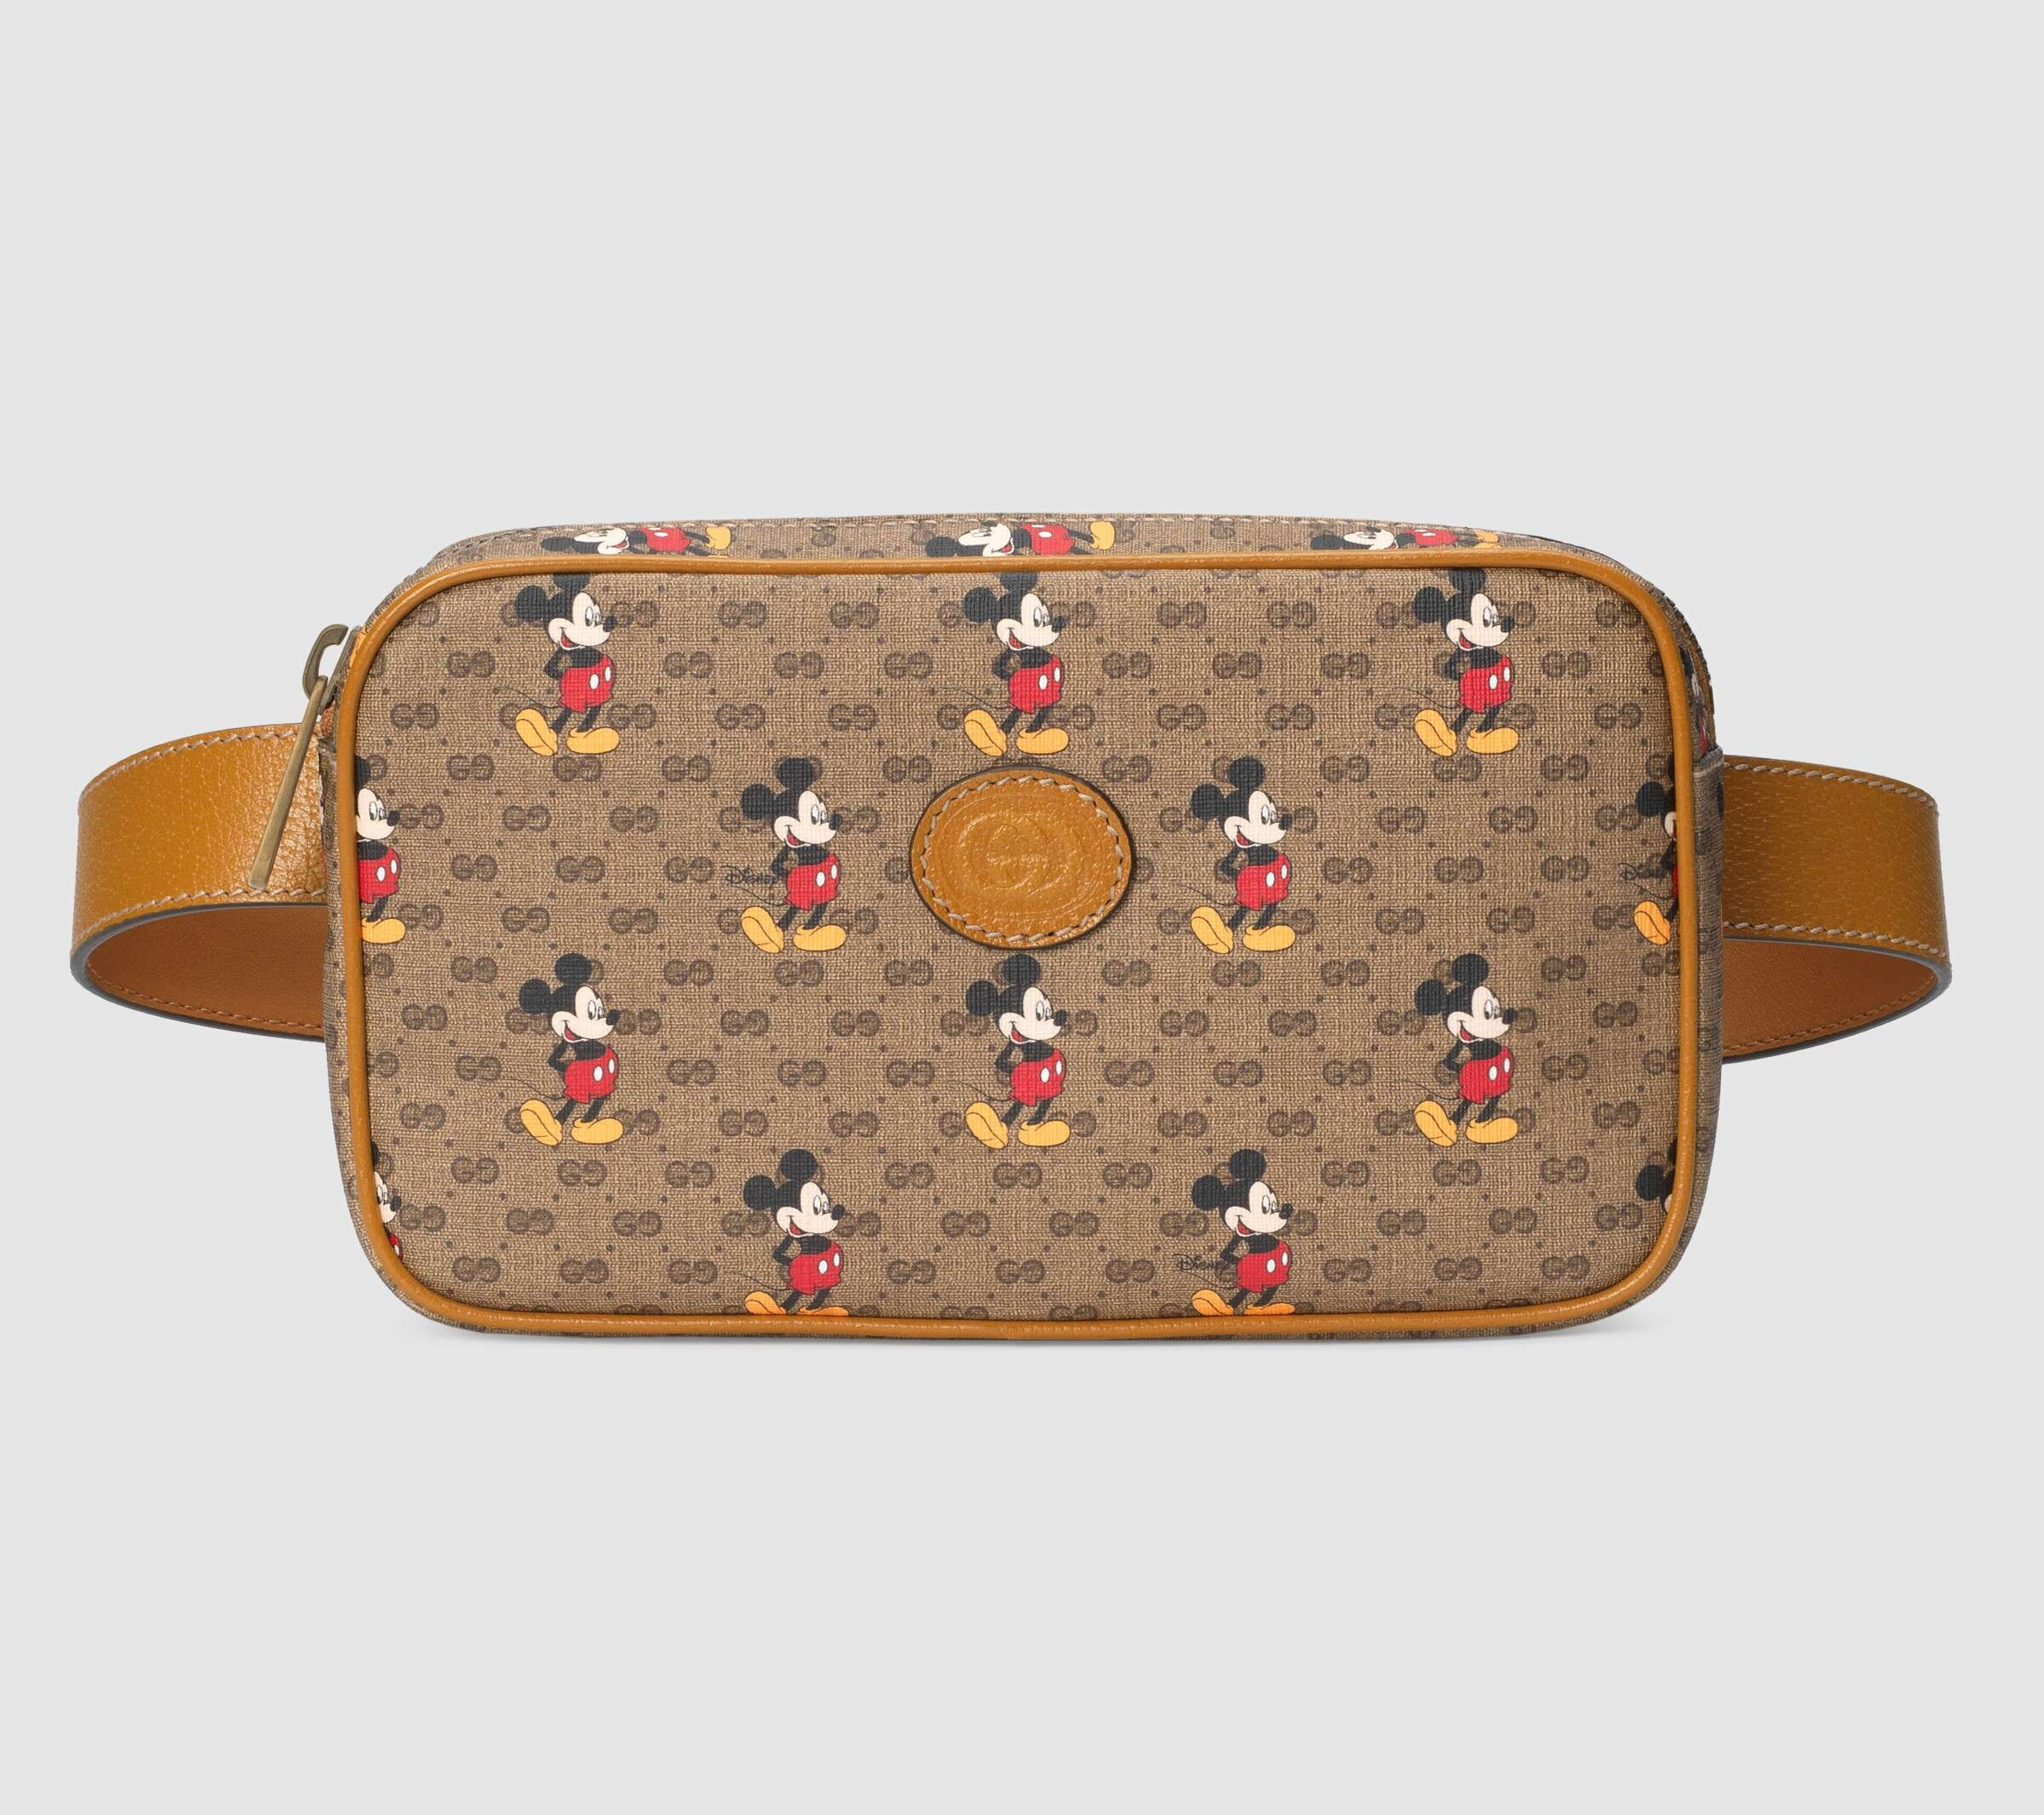 Gucci Disney X Gucci Belt Bag 602695 Light Brown Leather